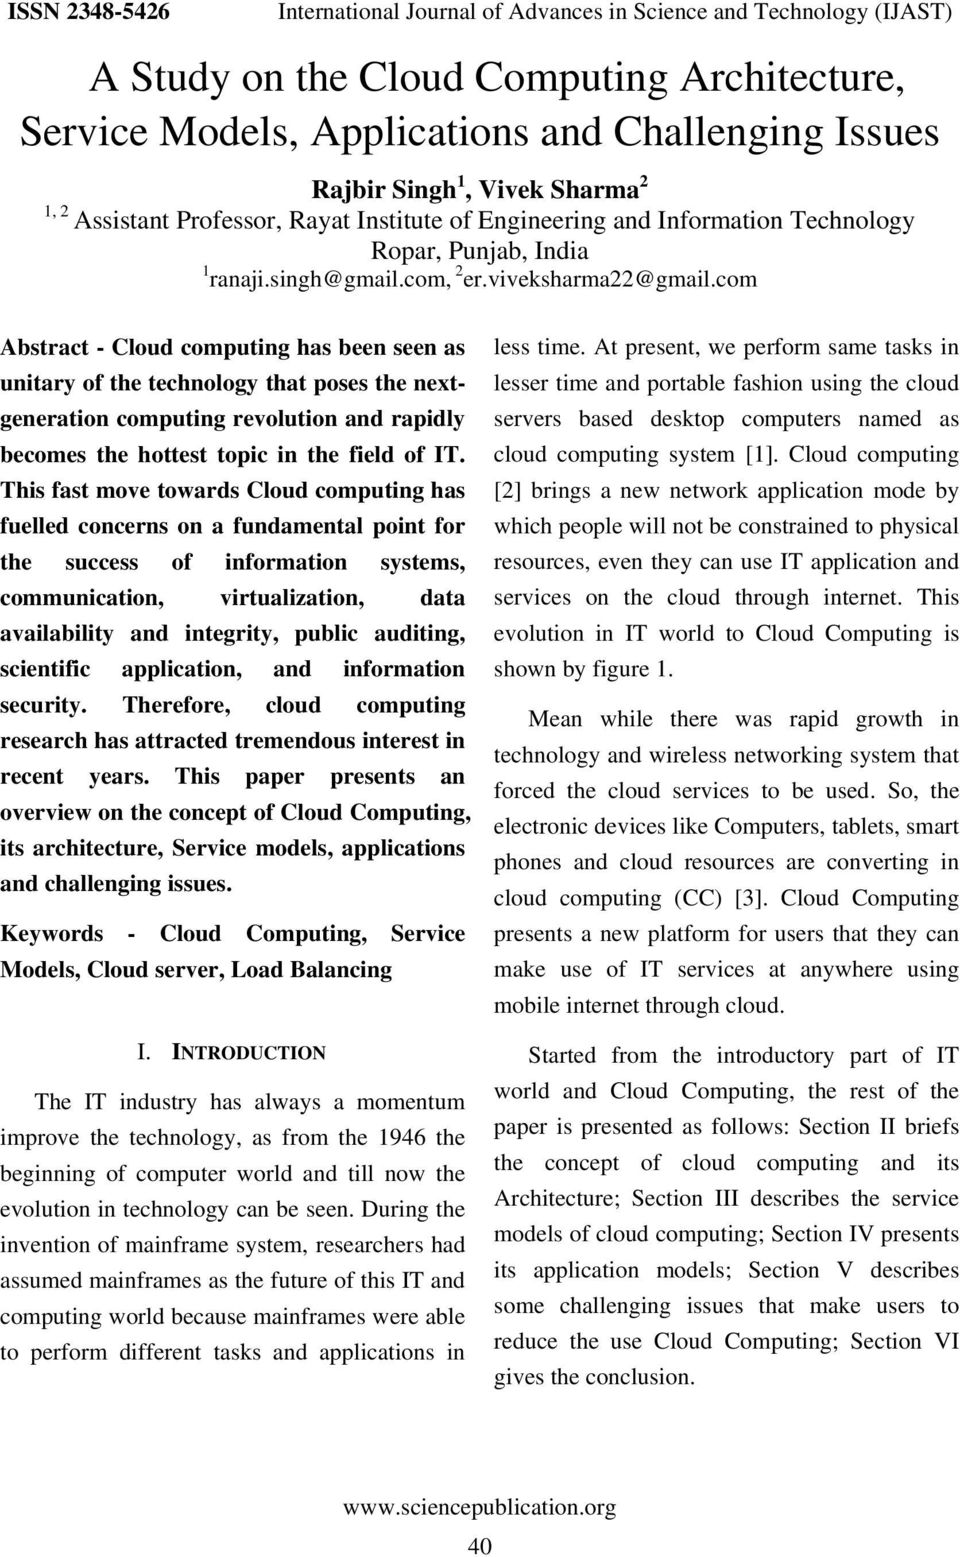 com Abstract - Cloud computing has been seen as unitary of the technology that poses the nextgeneration computing revolution and rapidly becomes the hottest topic in the field of IT.